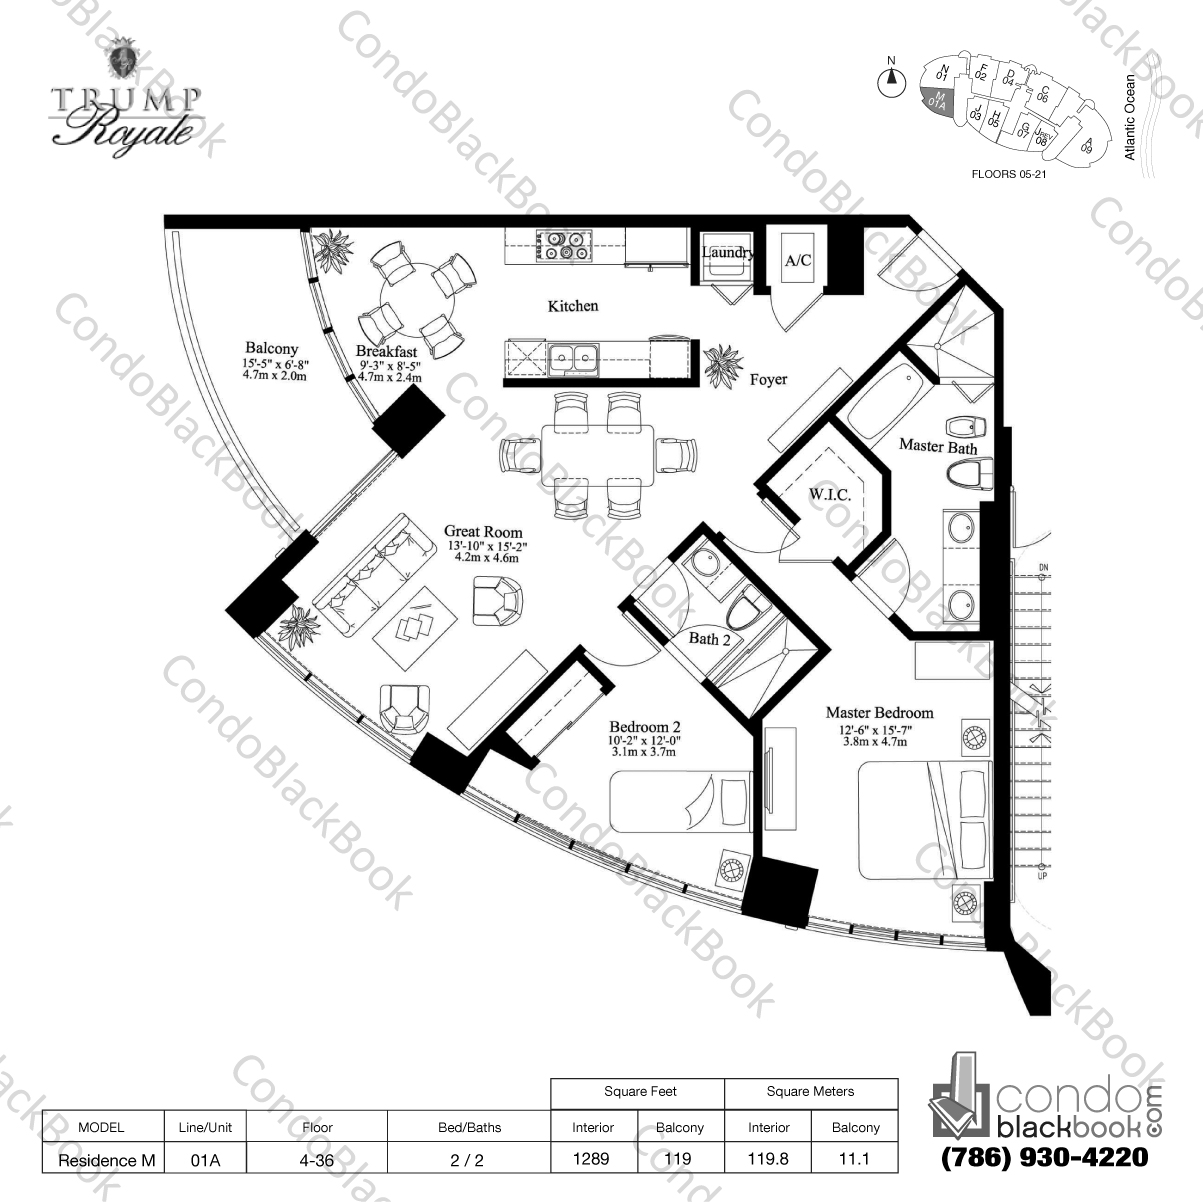 Floor plan for Trump Royale Sunny Isles Beach, model Residence M, line 01A, 2 / 2 bedrooms, 1289 sq ft